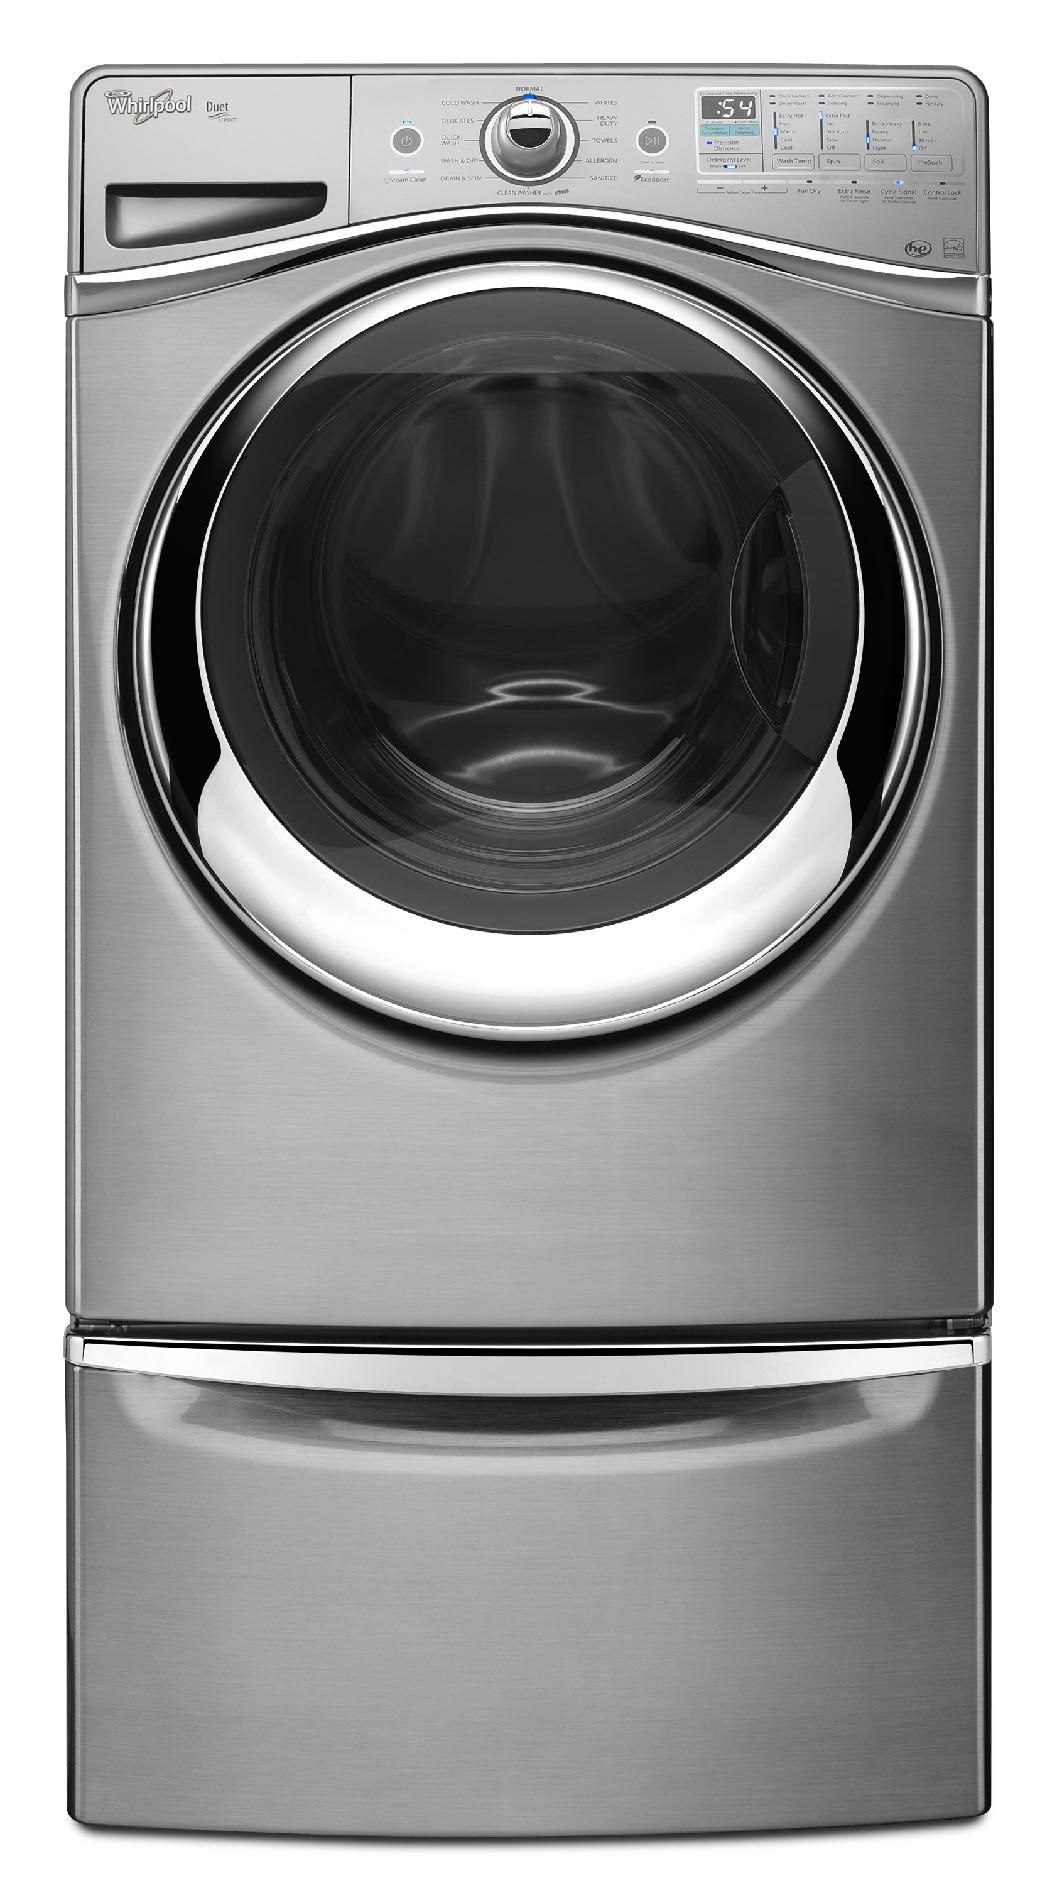 Whirlpool 4.3 cu. ft. Front-Load Washer w/ Precision Dispense Ultra - Diamond Steel